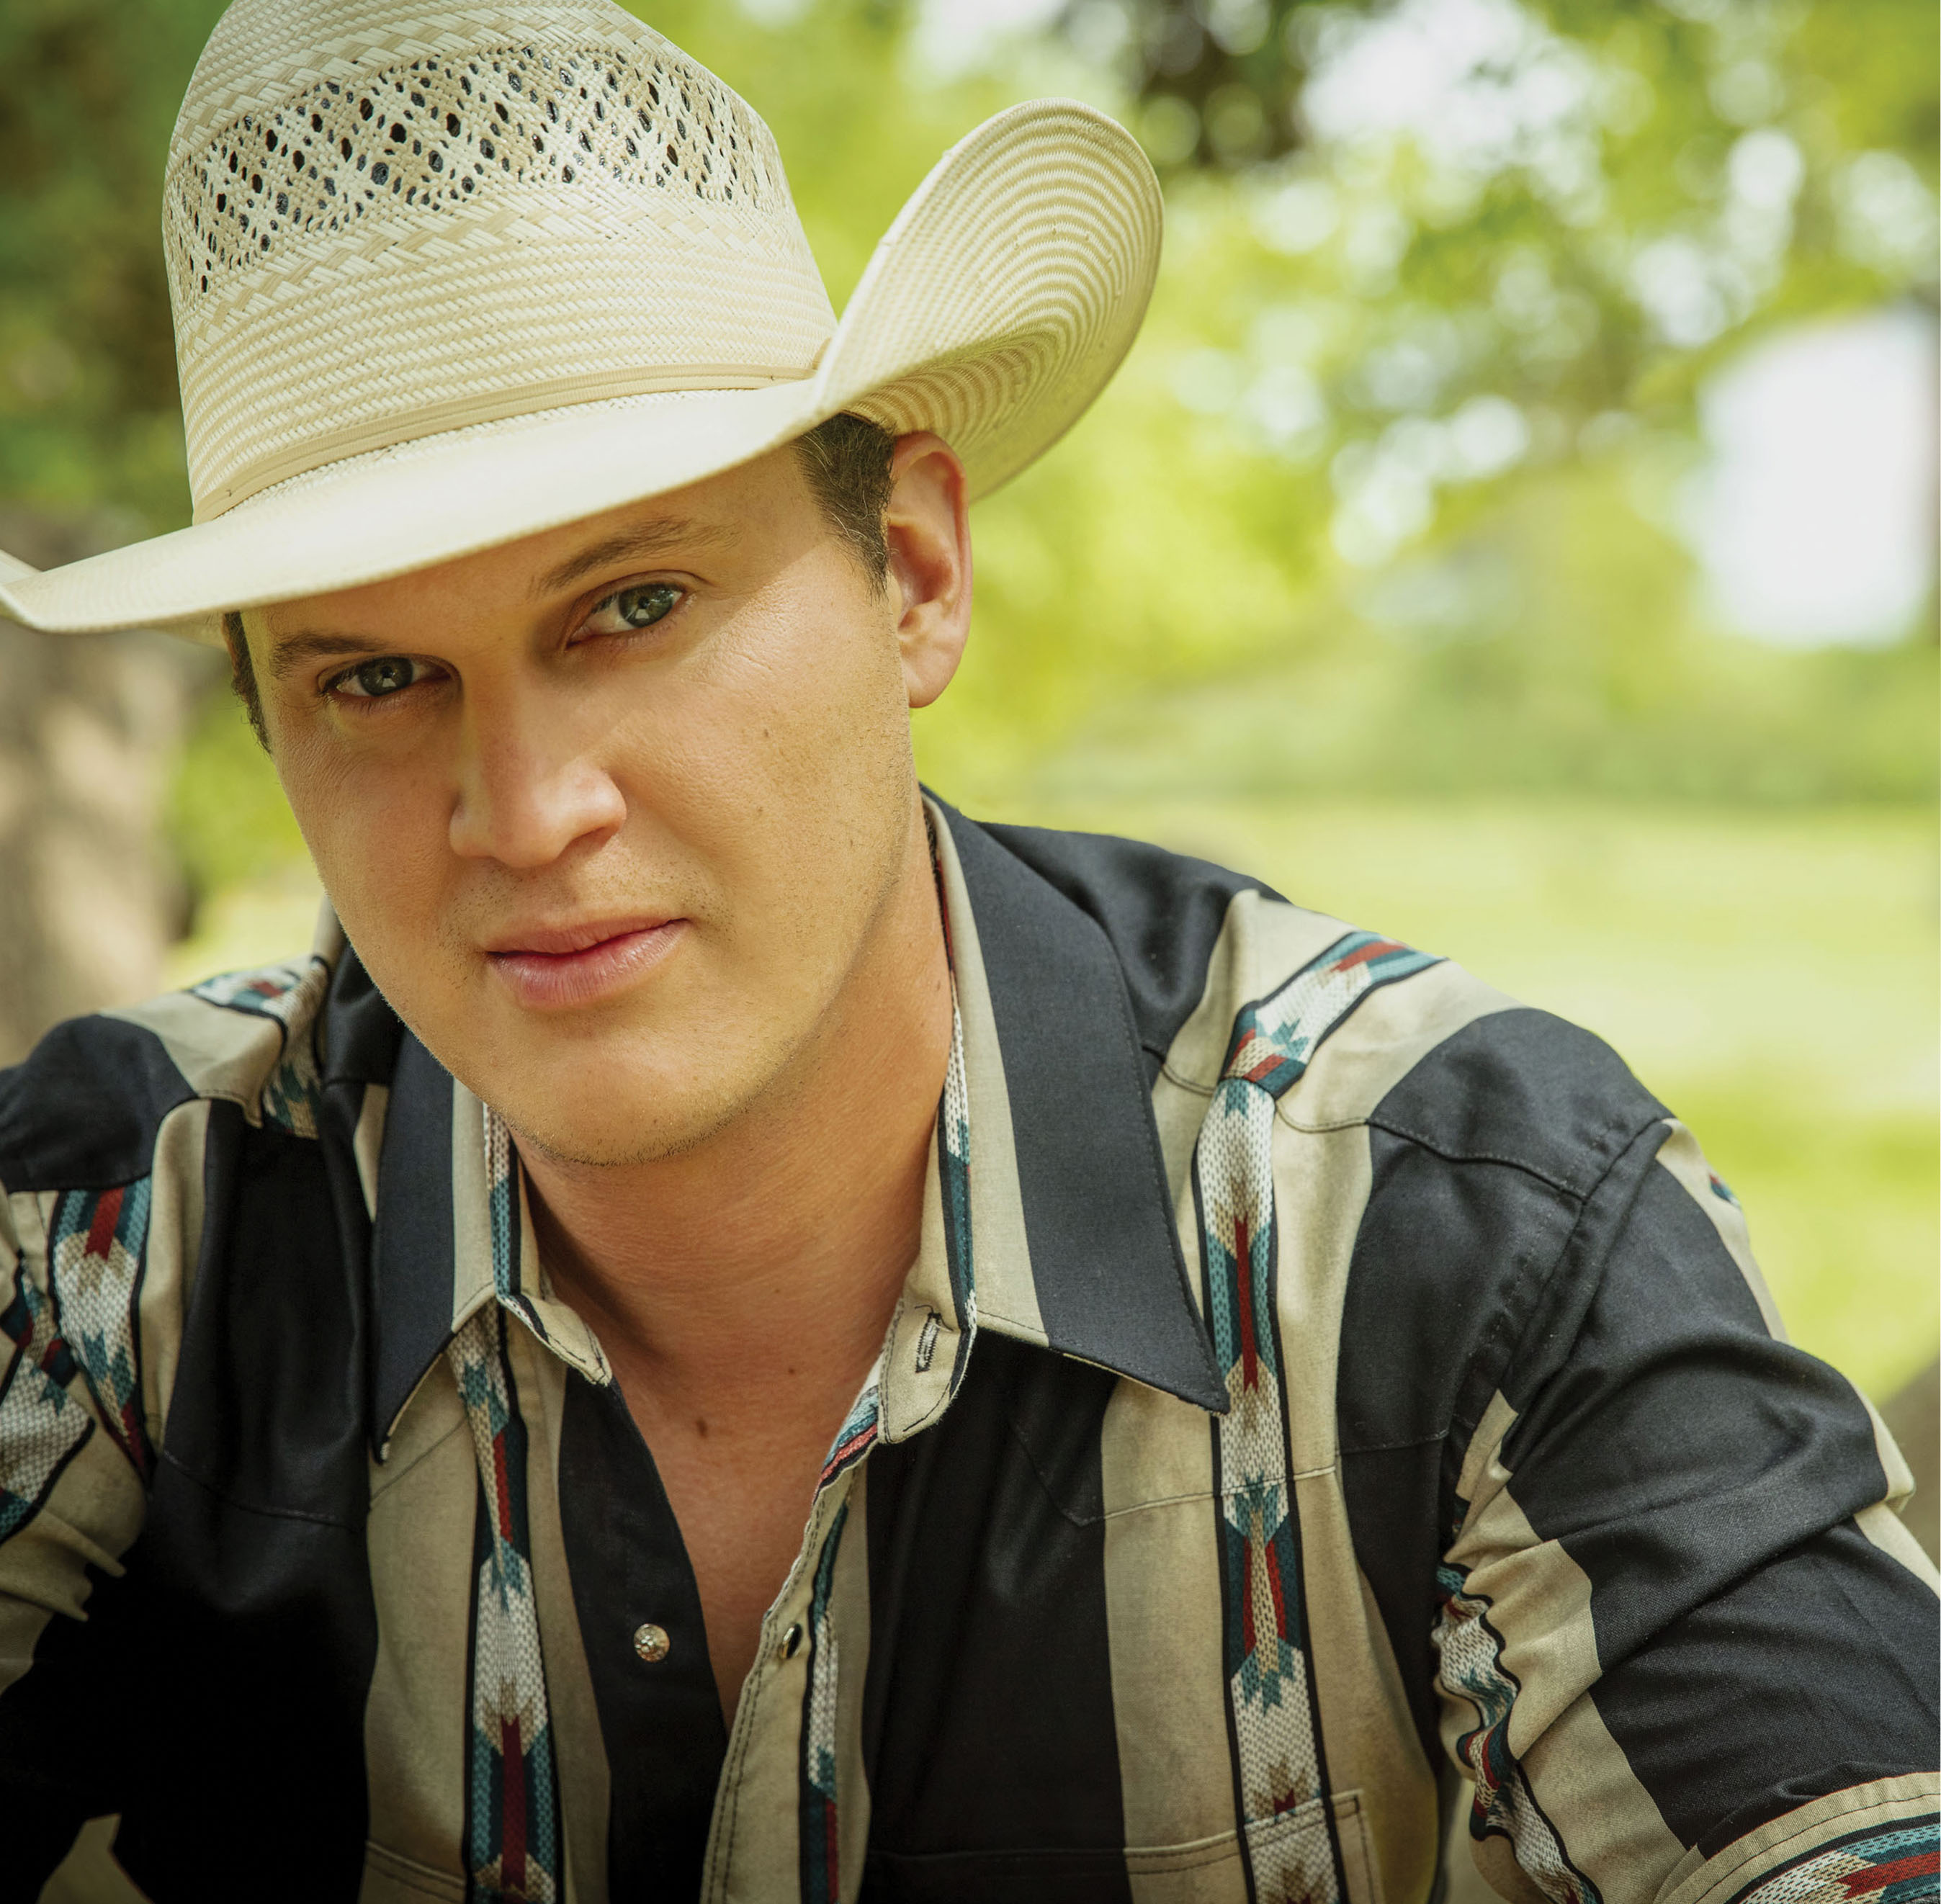 JON PARDI RELEASES SURPRISE ALBUM RANCHO FIESTA SESSIONS.